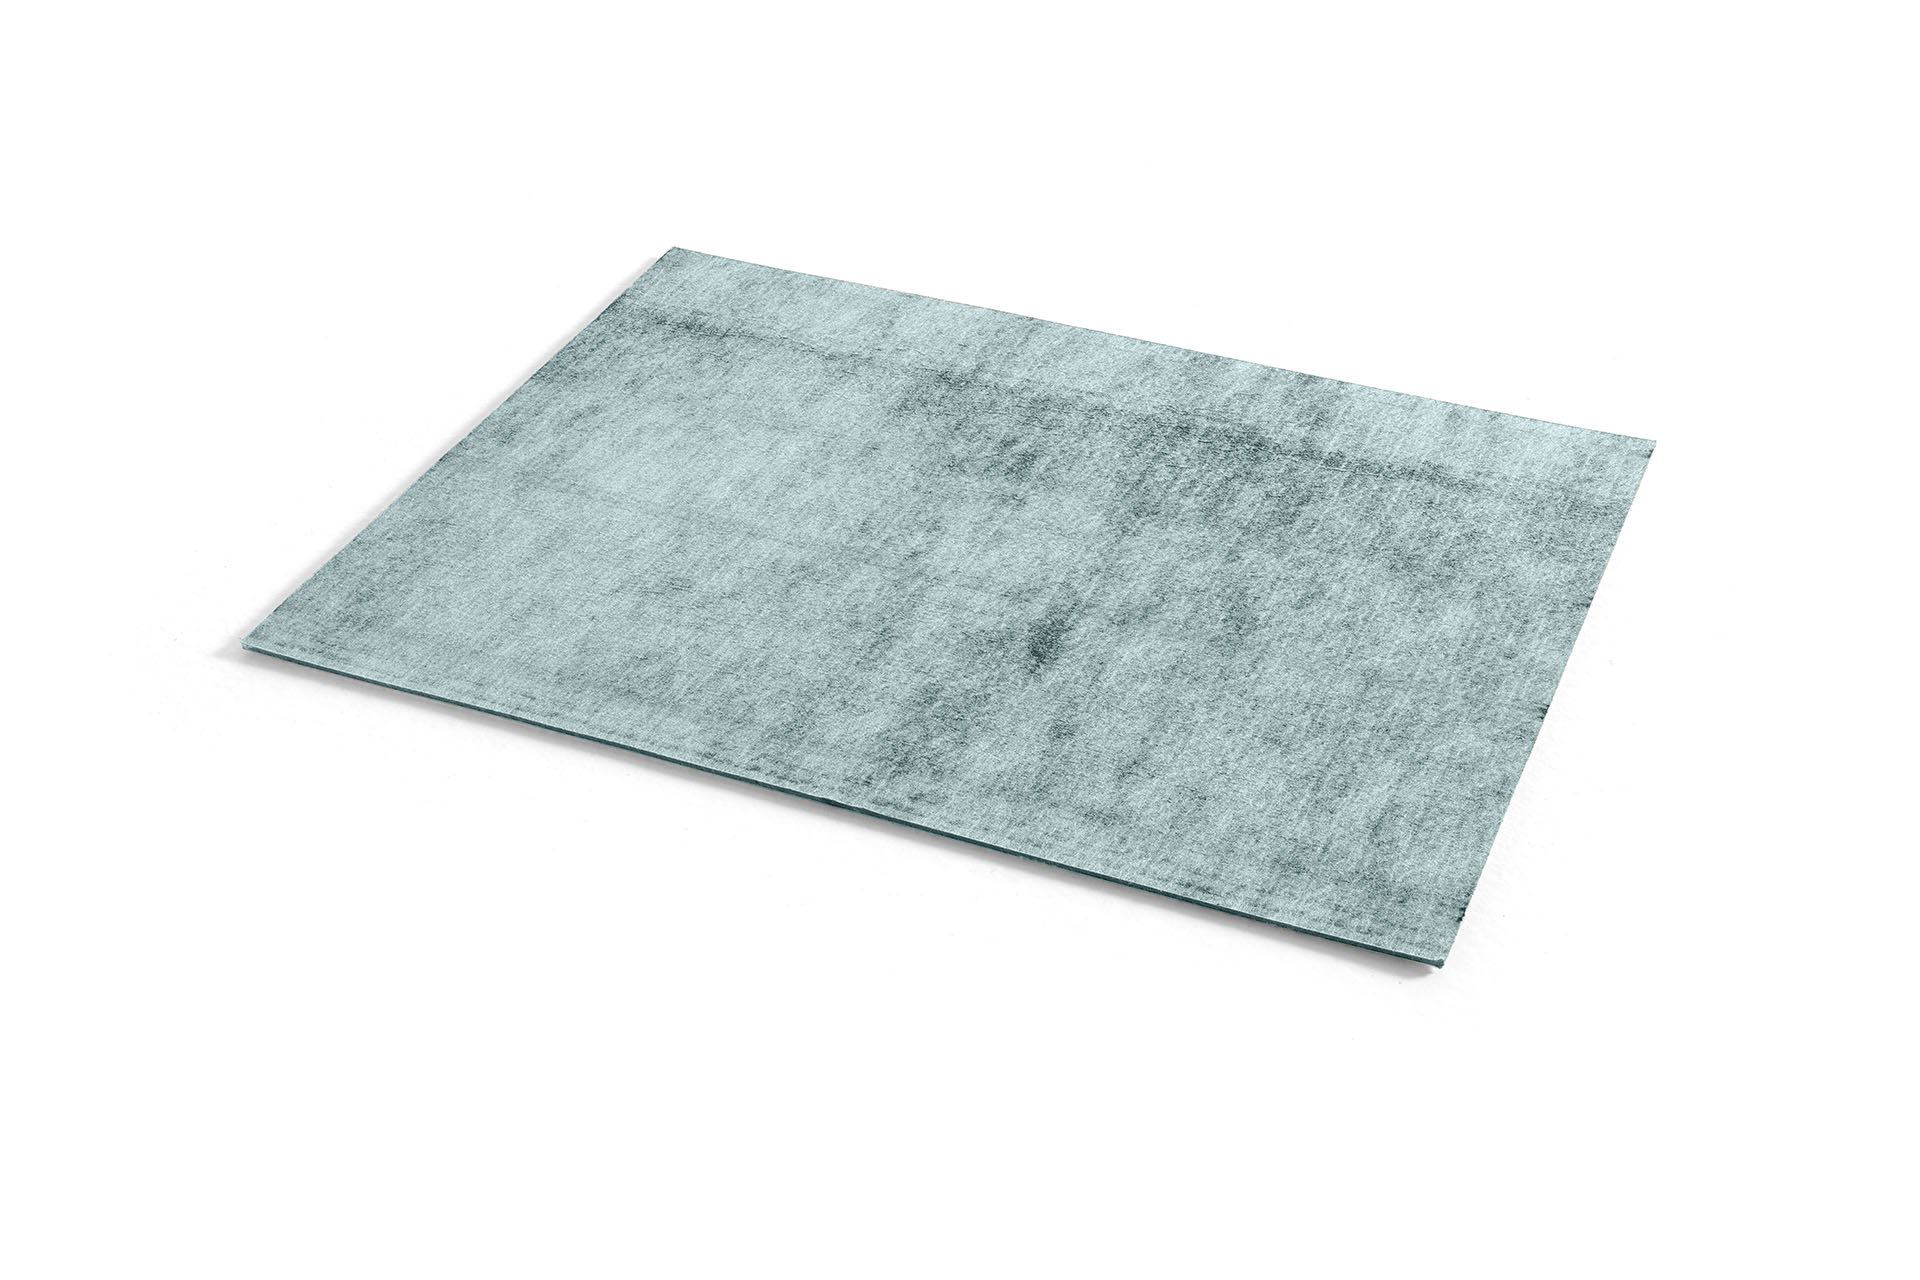 Acoustic insulating panel